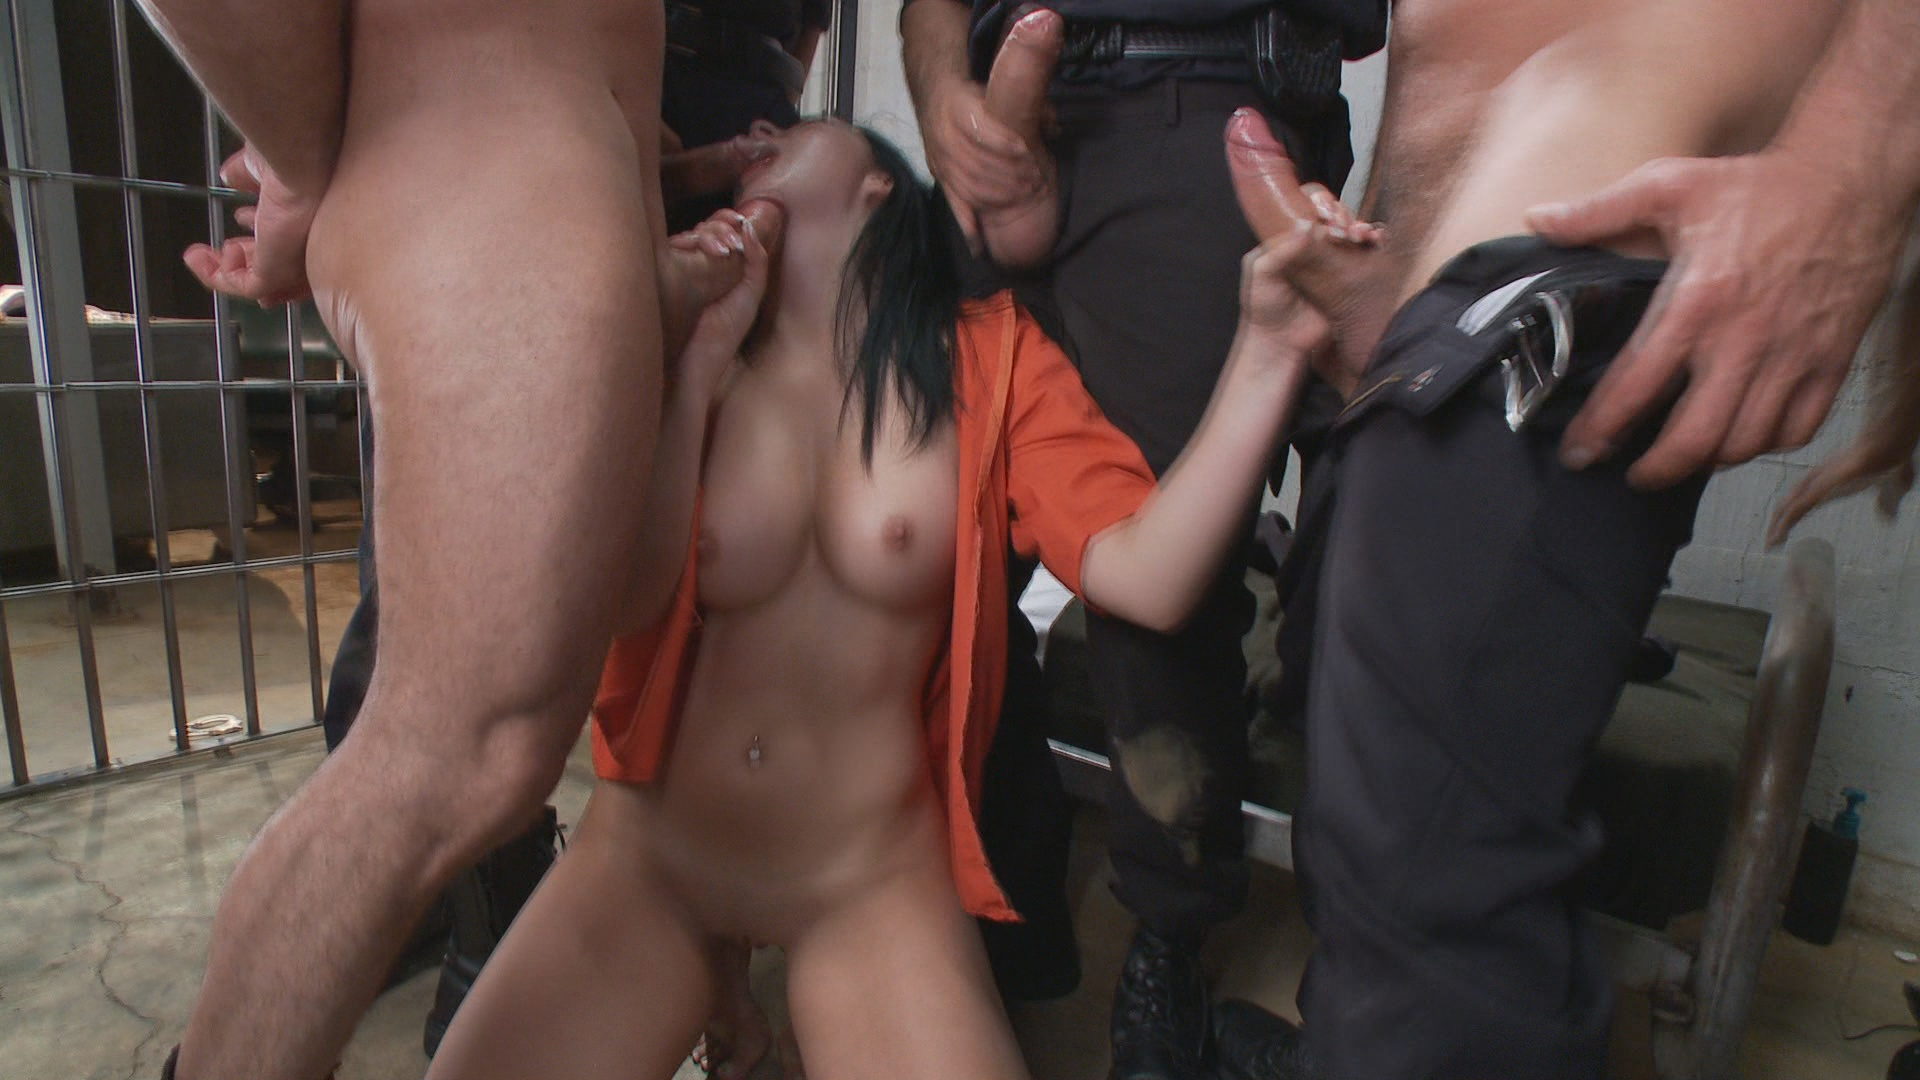 Bound Gangbangs: French Hottie Gets Pounded By 5 Prison Guards xvideos174122